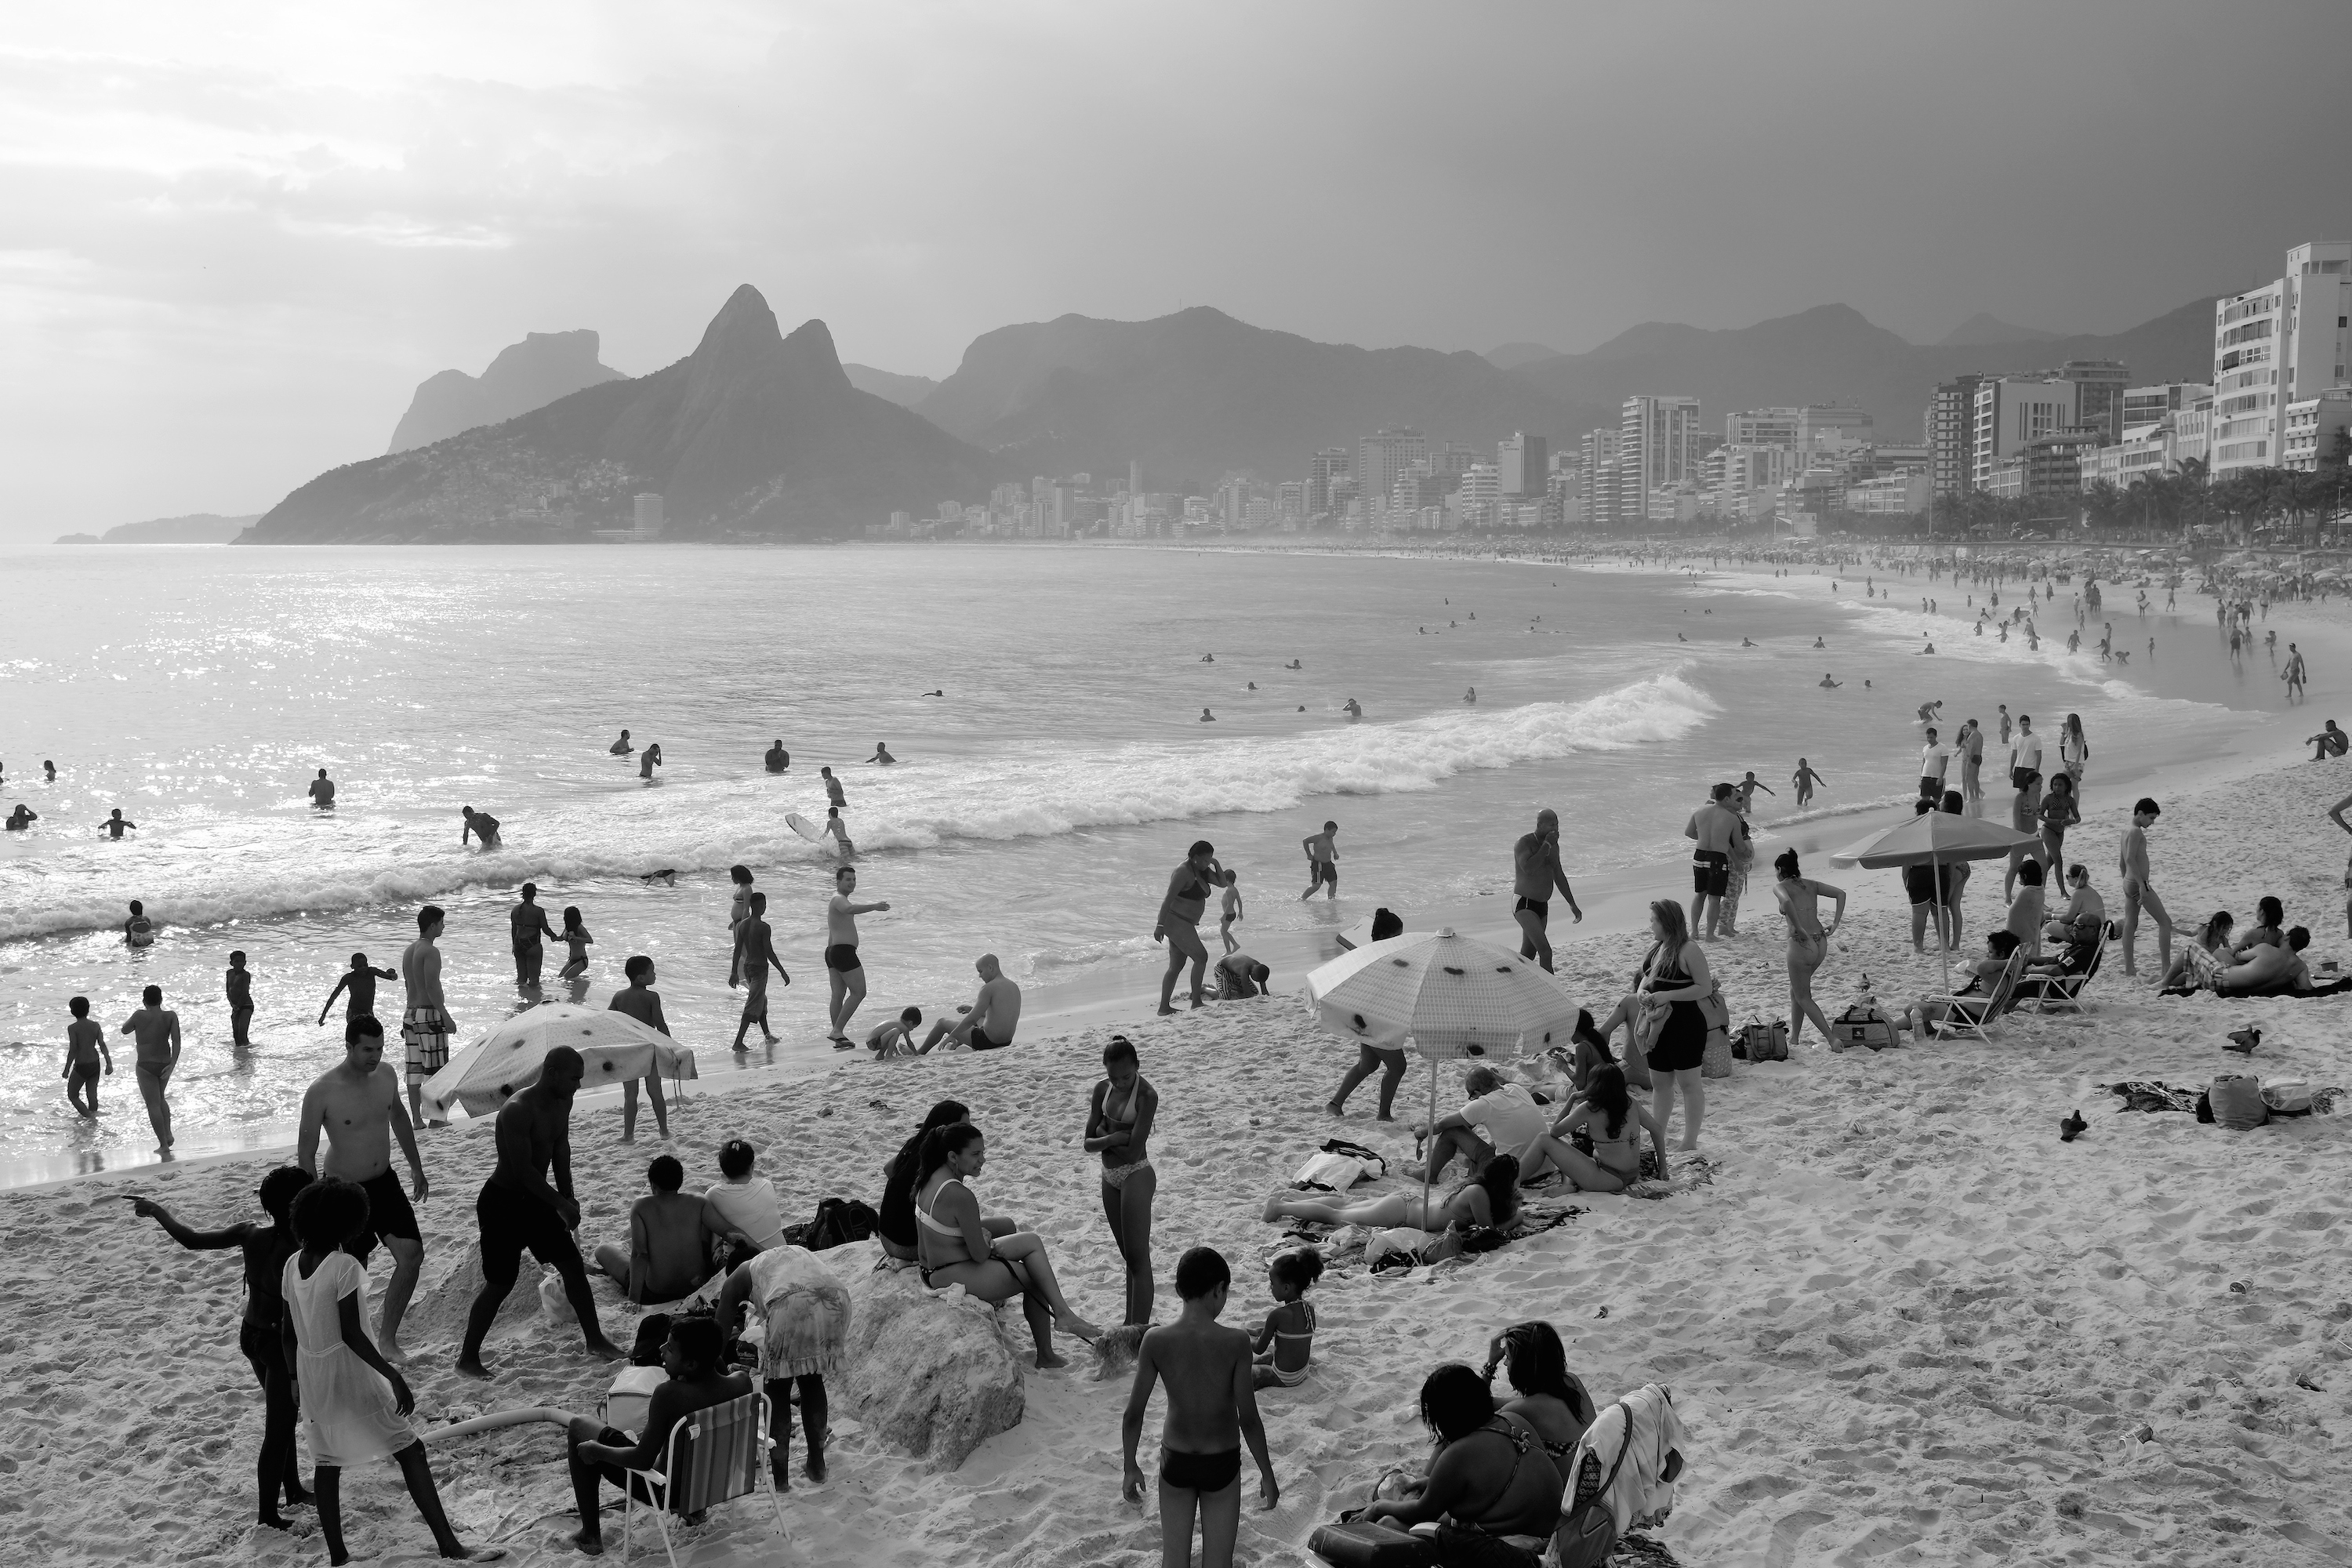 New Netflix Series Is Set in 1950s Rio de Janeiro During Birth of Bossa Nova